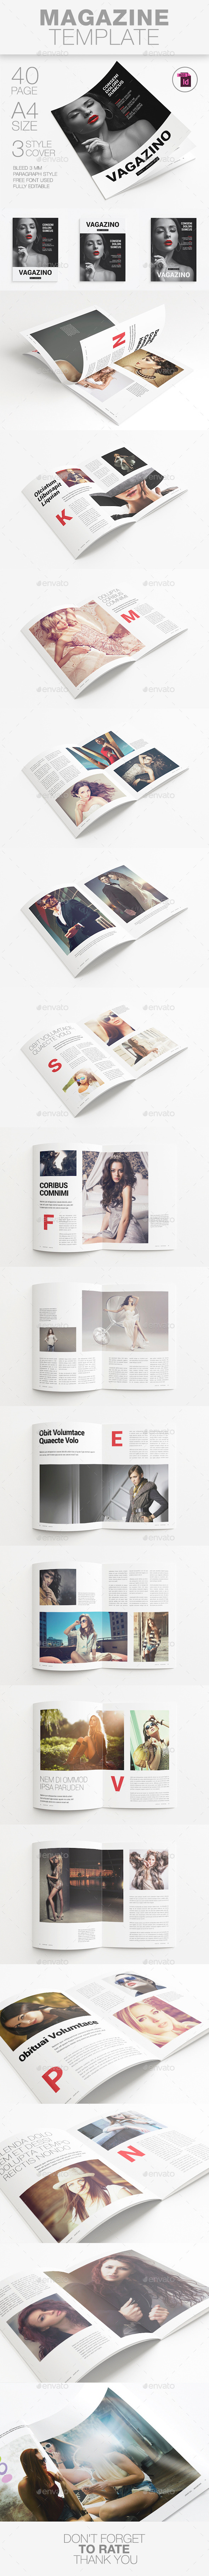 A4 Magazine Template